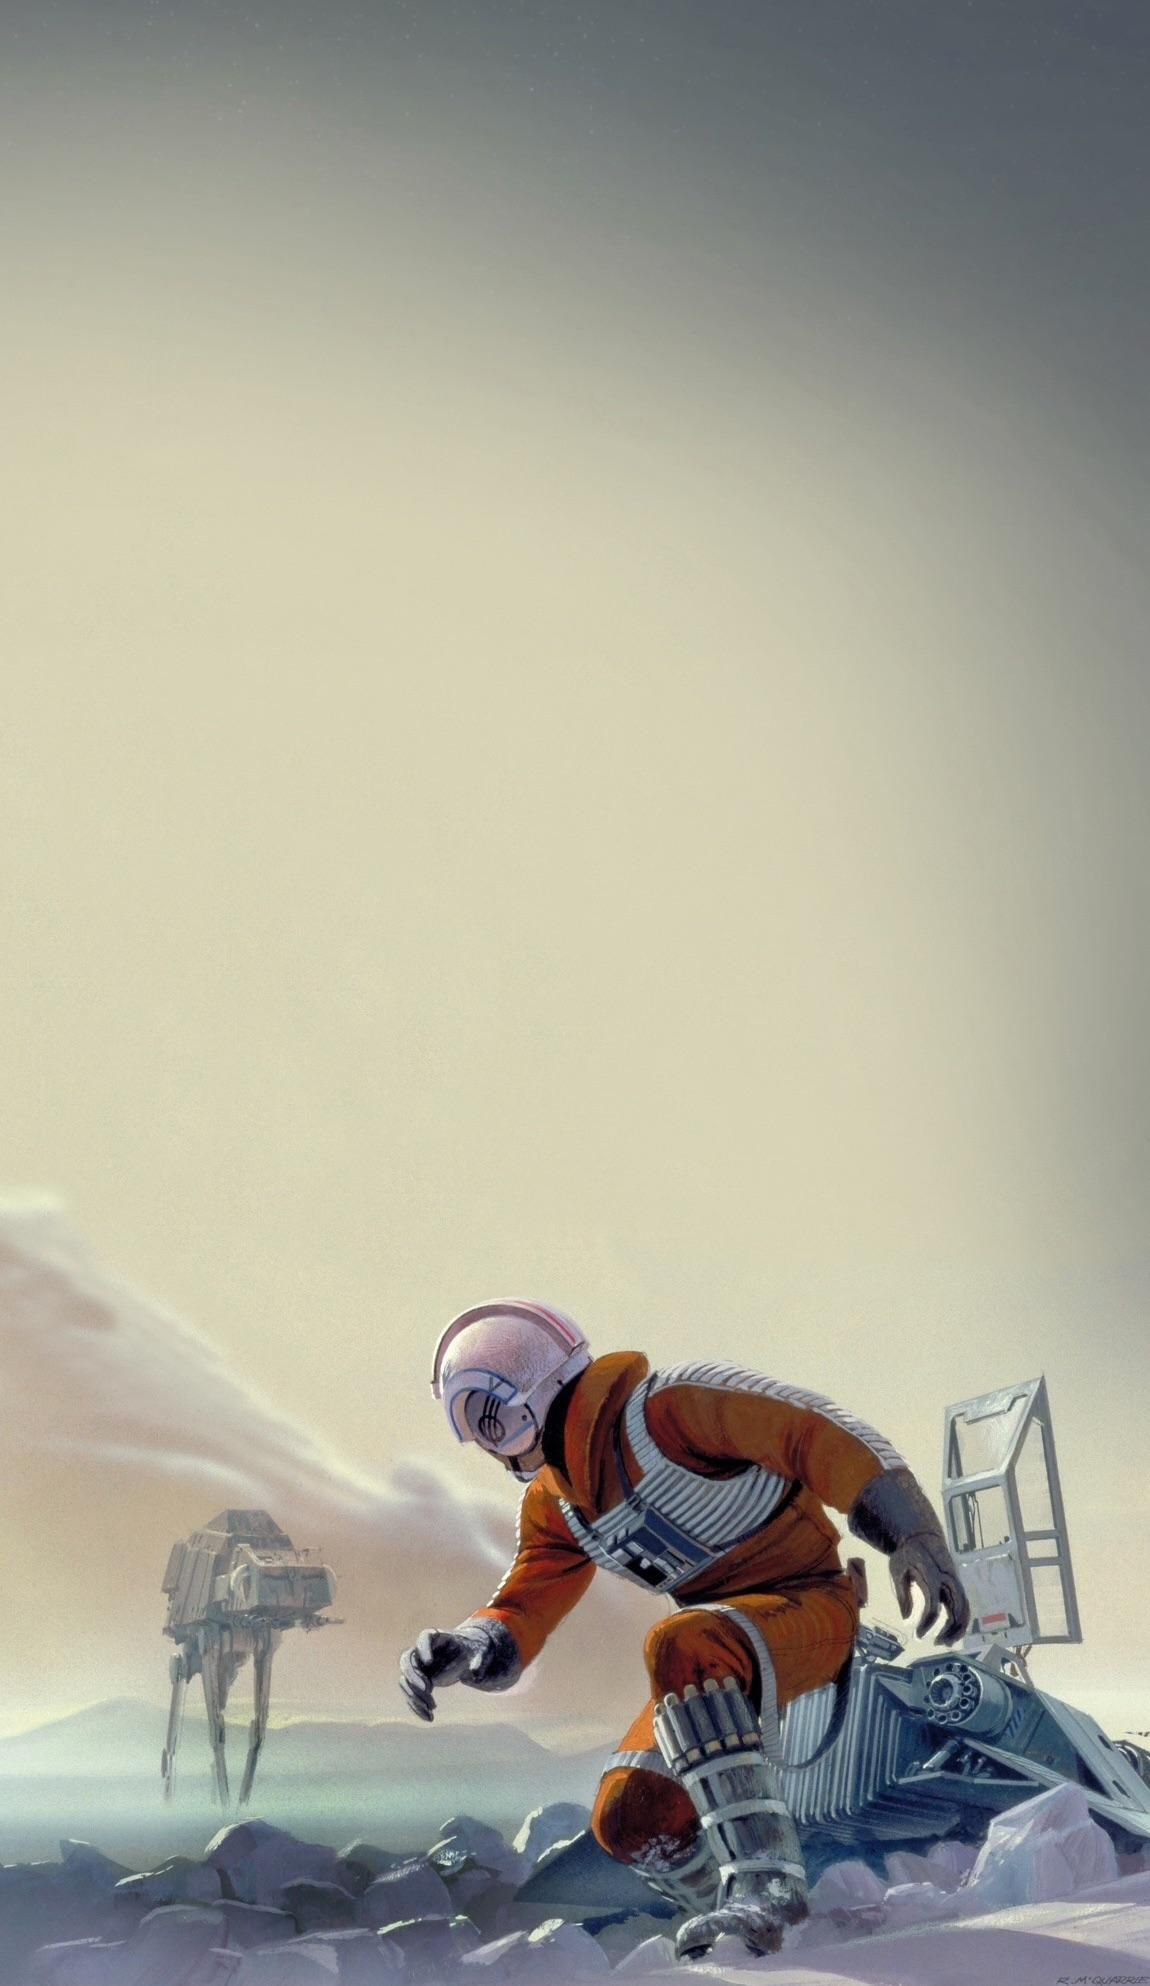 A chilly Hoth wallpaper.http//bit.ly/2DQ3gcw Star wars